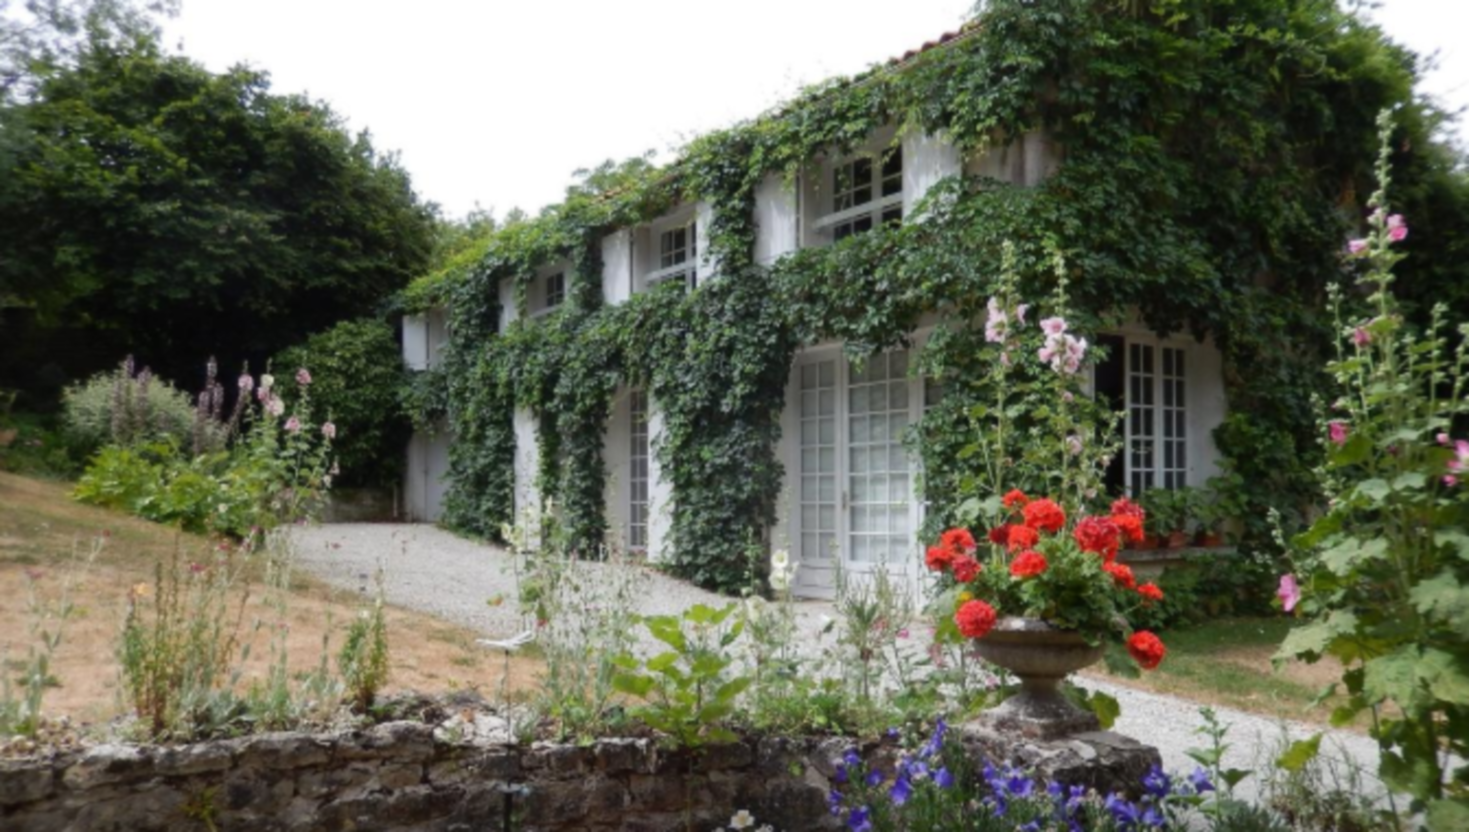 A house with bushes in front of a building at Le Petit Massigny.